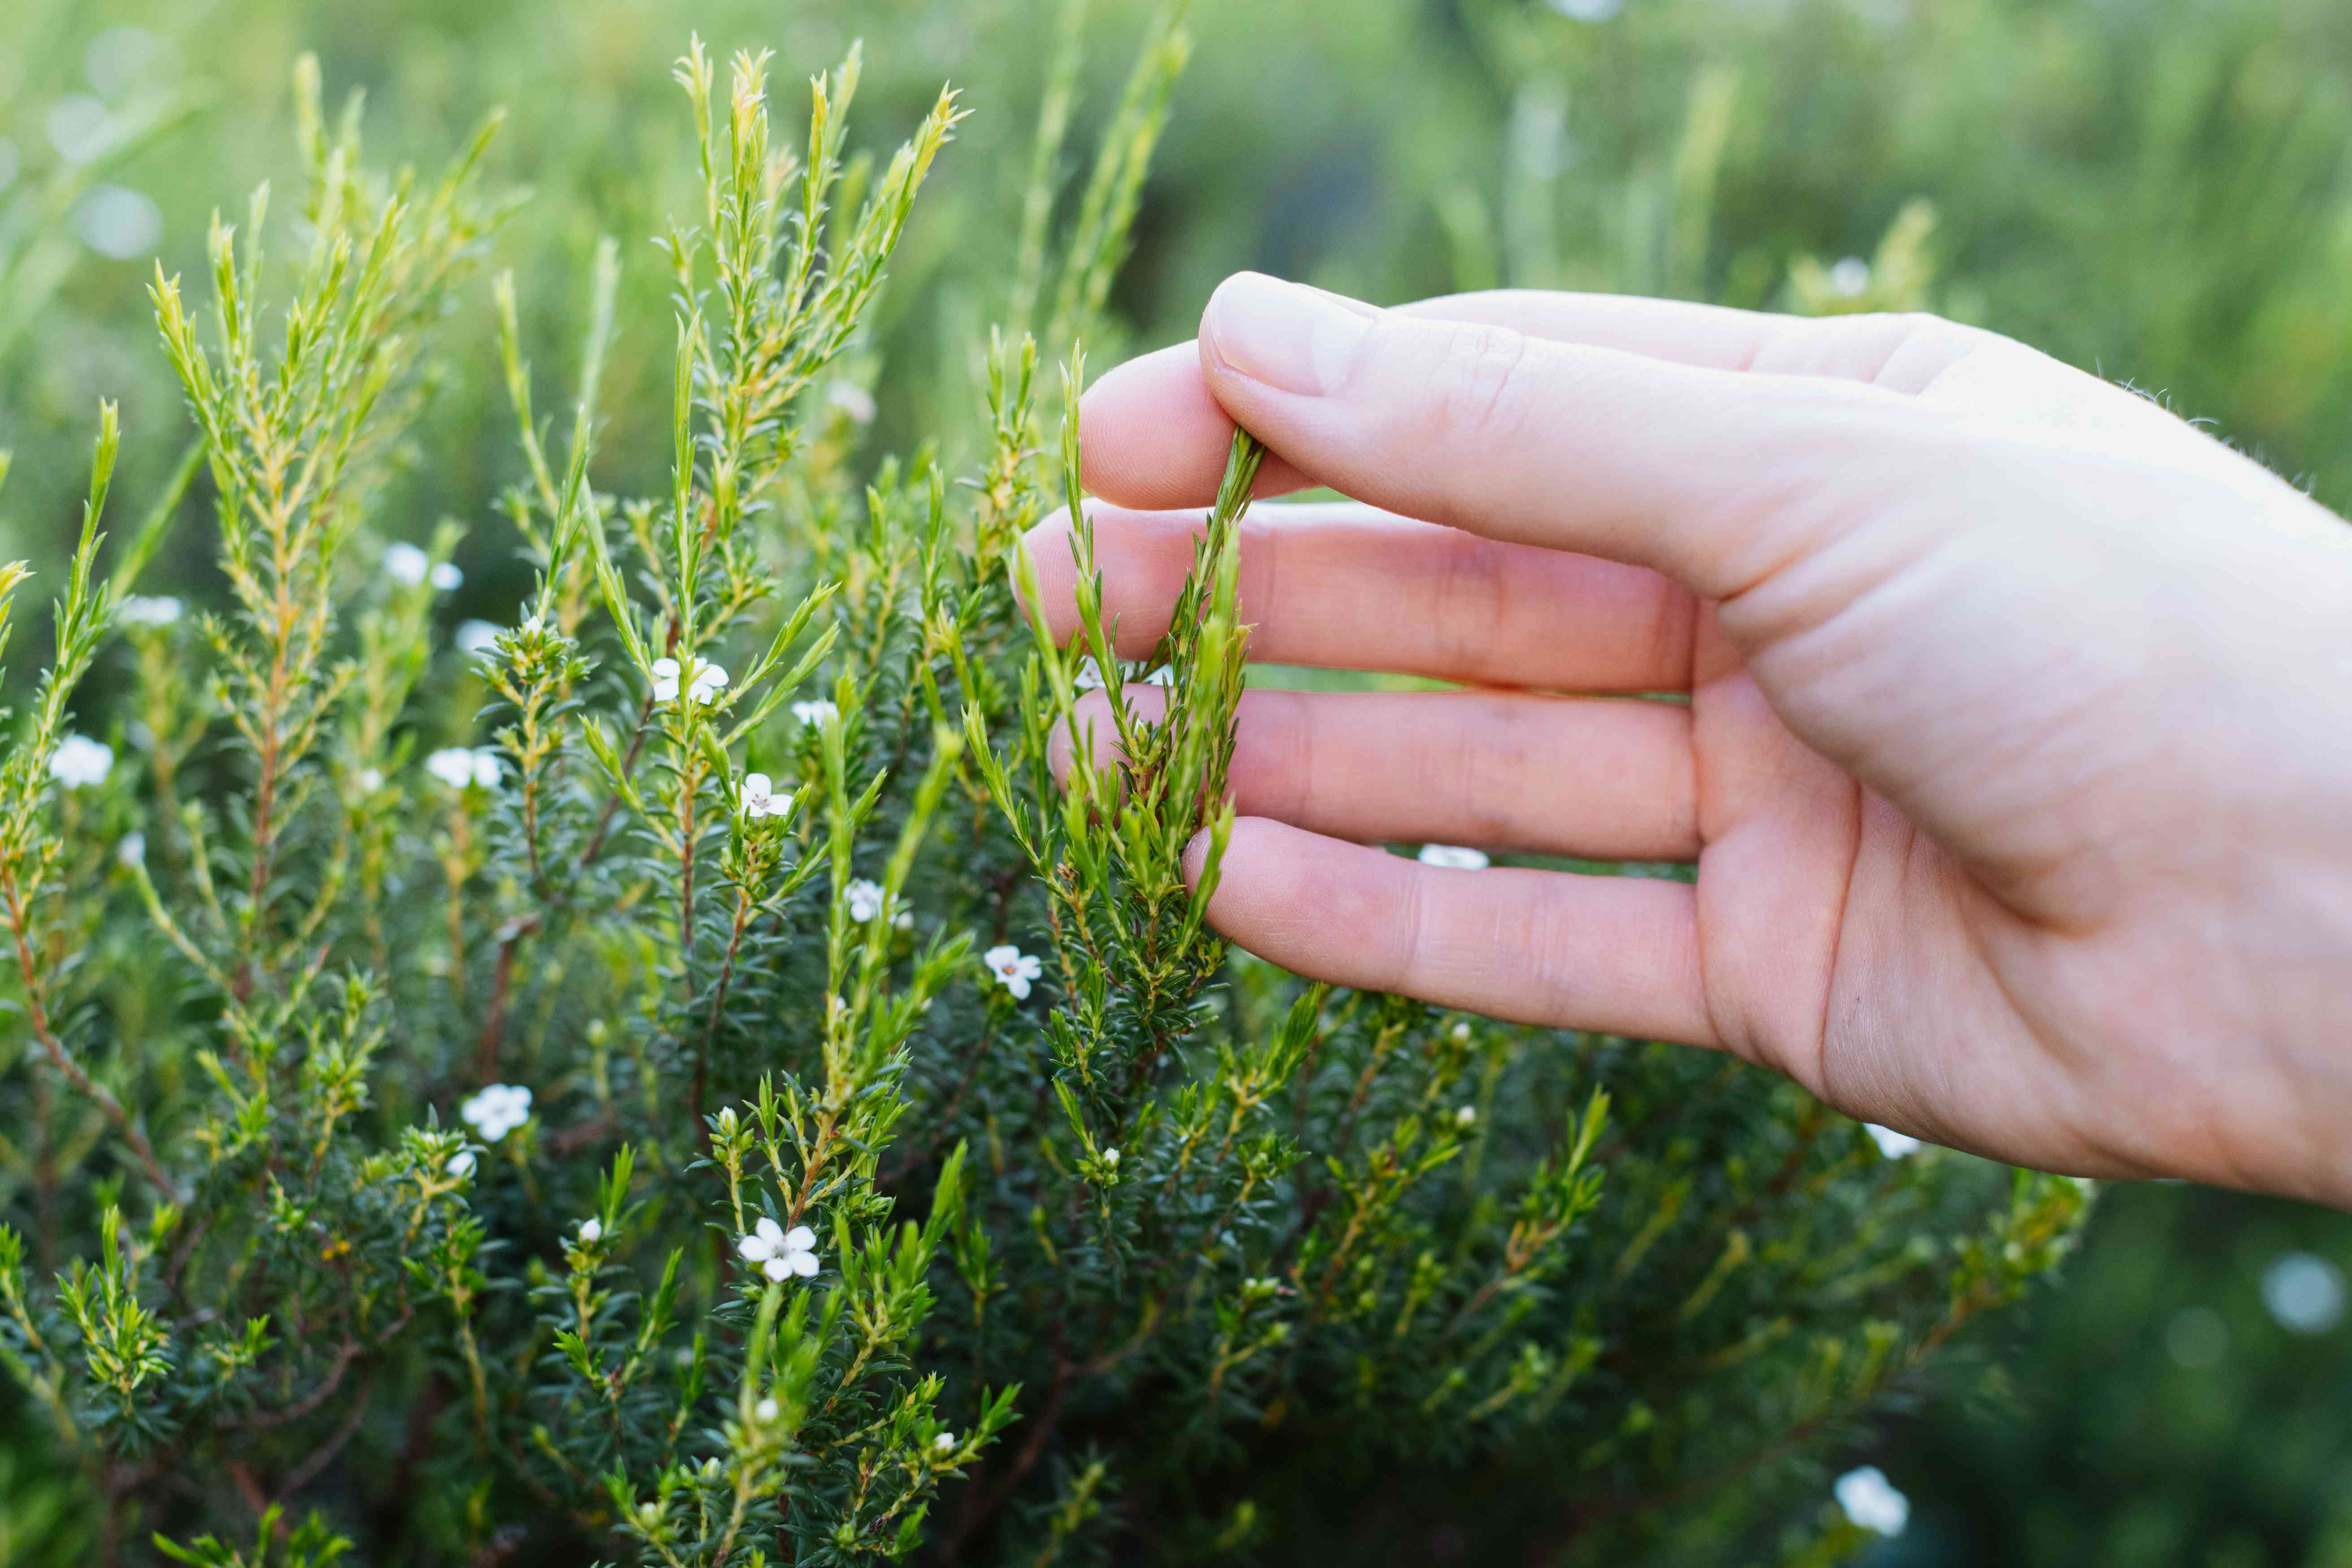 Hand holding evergreen shrub with broadleaf branch with buds and tiny white flowers closeup